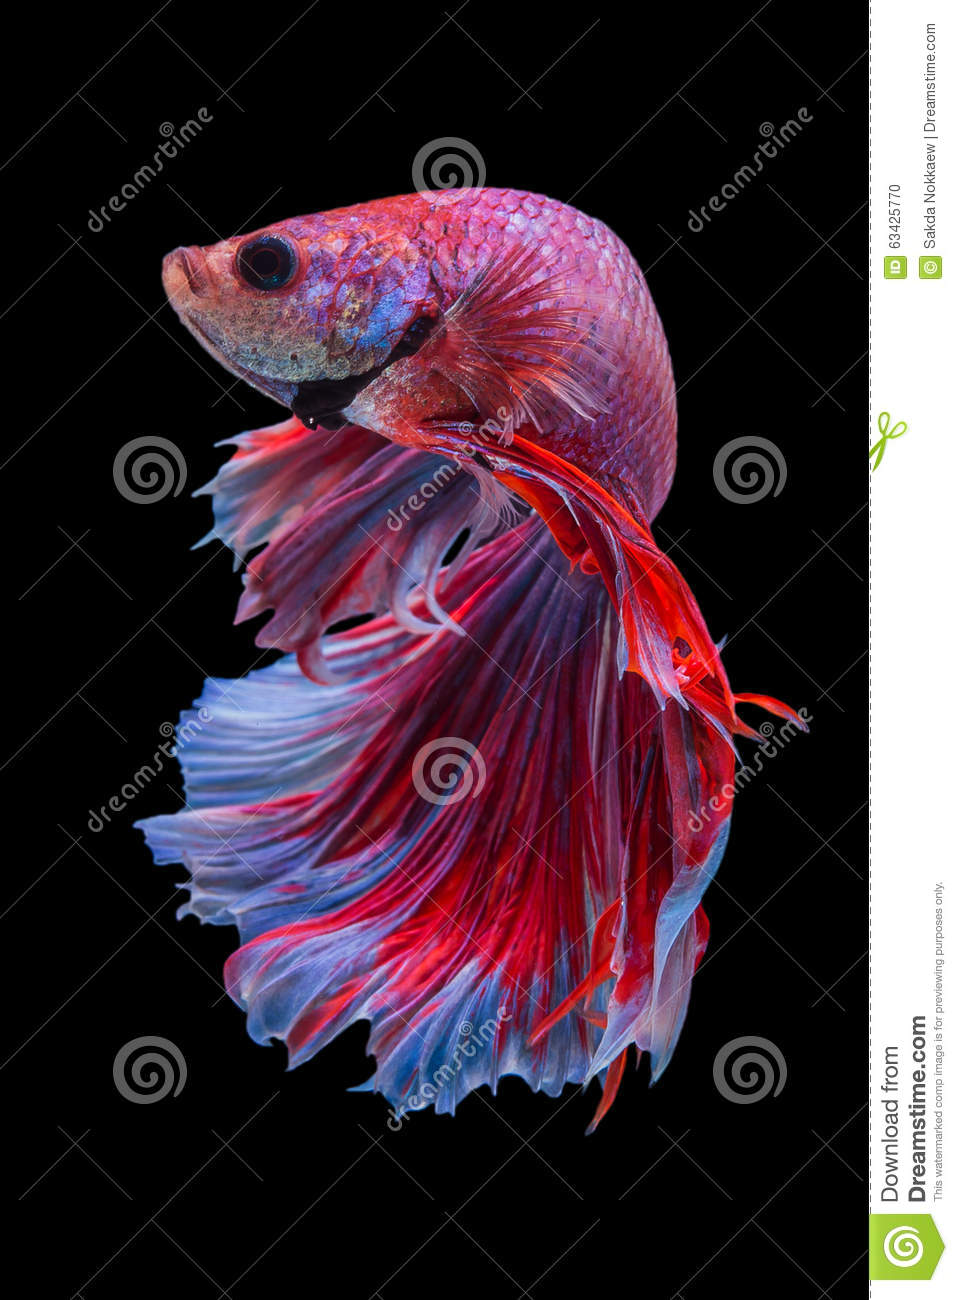 Betta stock photo. Image of color, background, nature - 63425770